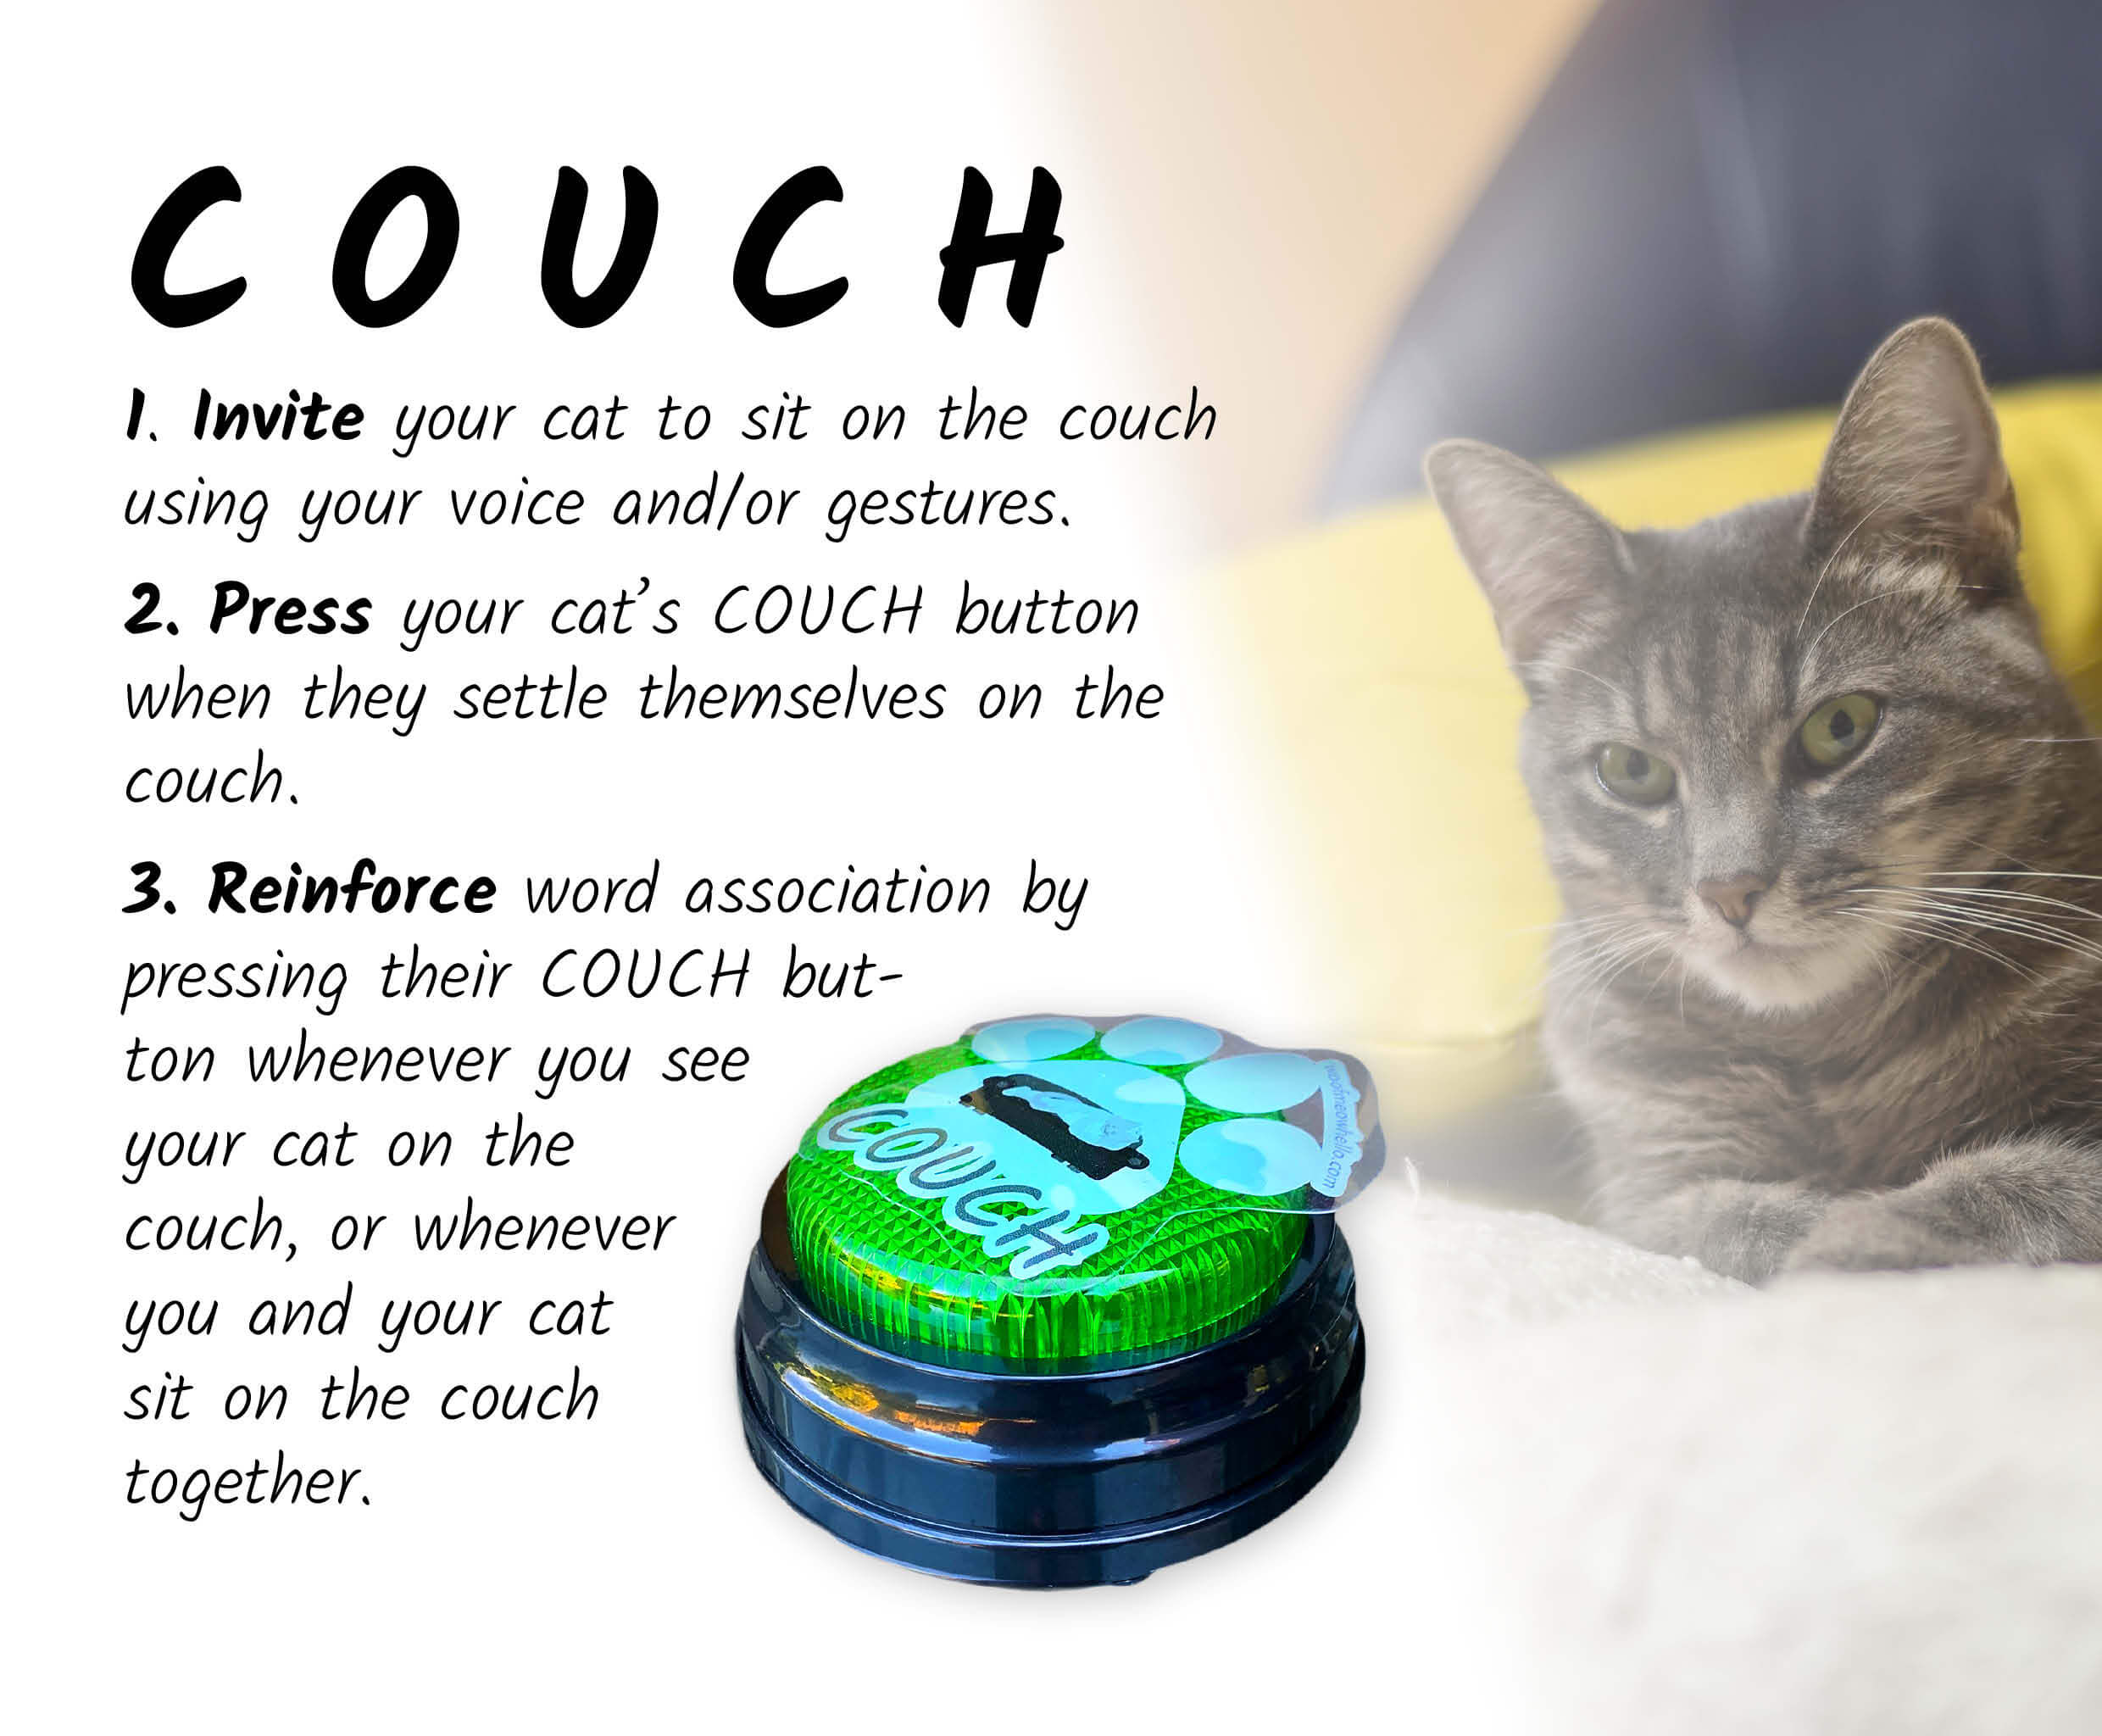 To train your cat to say COUCH, start by inviting them to sit on the couch using your voice or gestures. Press your cat's COUCH button once they've settled themselves on the couch. Reinforce word association by pressing their COUCH button whenever you see your cat on the couch, or whenever you and your cat sit on the couch together. To the right of these instructions is a green speech button for cats with the COUCH sticker label. To the right of the button is a cat lounging on a blue couch with yellow pillows.